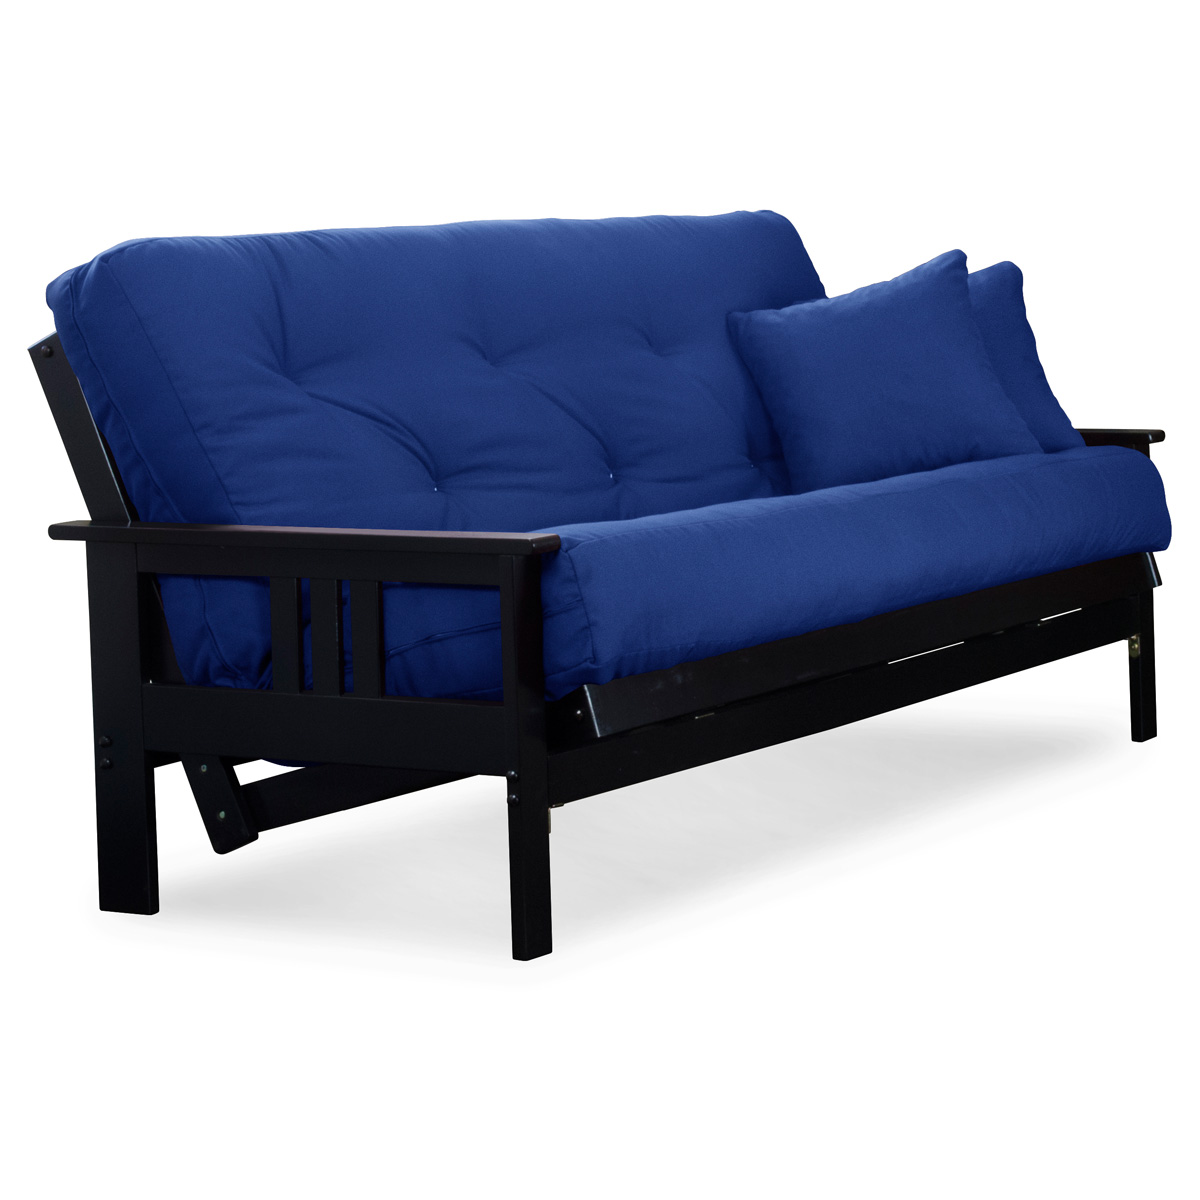 Orlando Wood Futon Frame Black Finish Full Size